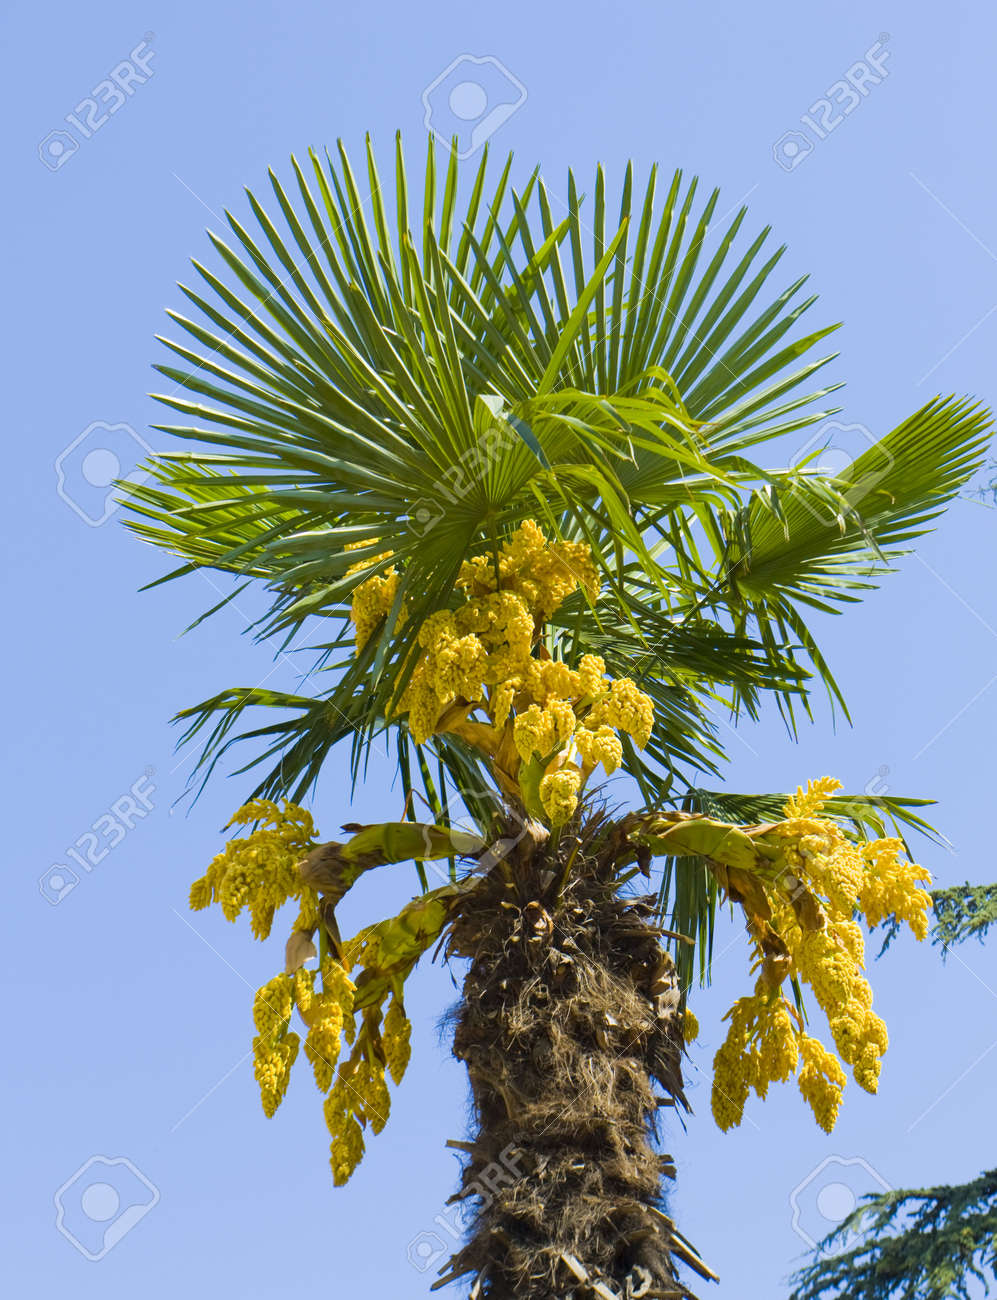 Top of palm tree on blue sky with yellow flowers stock photo stock photo top of palm tree on blue sky with yellow flowers mightylinksfo Gallery